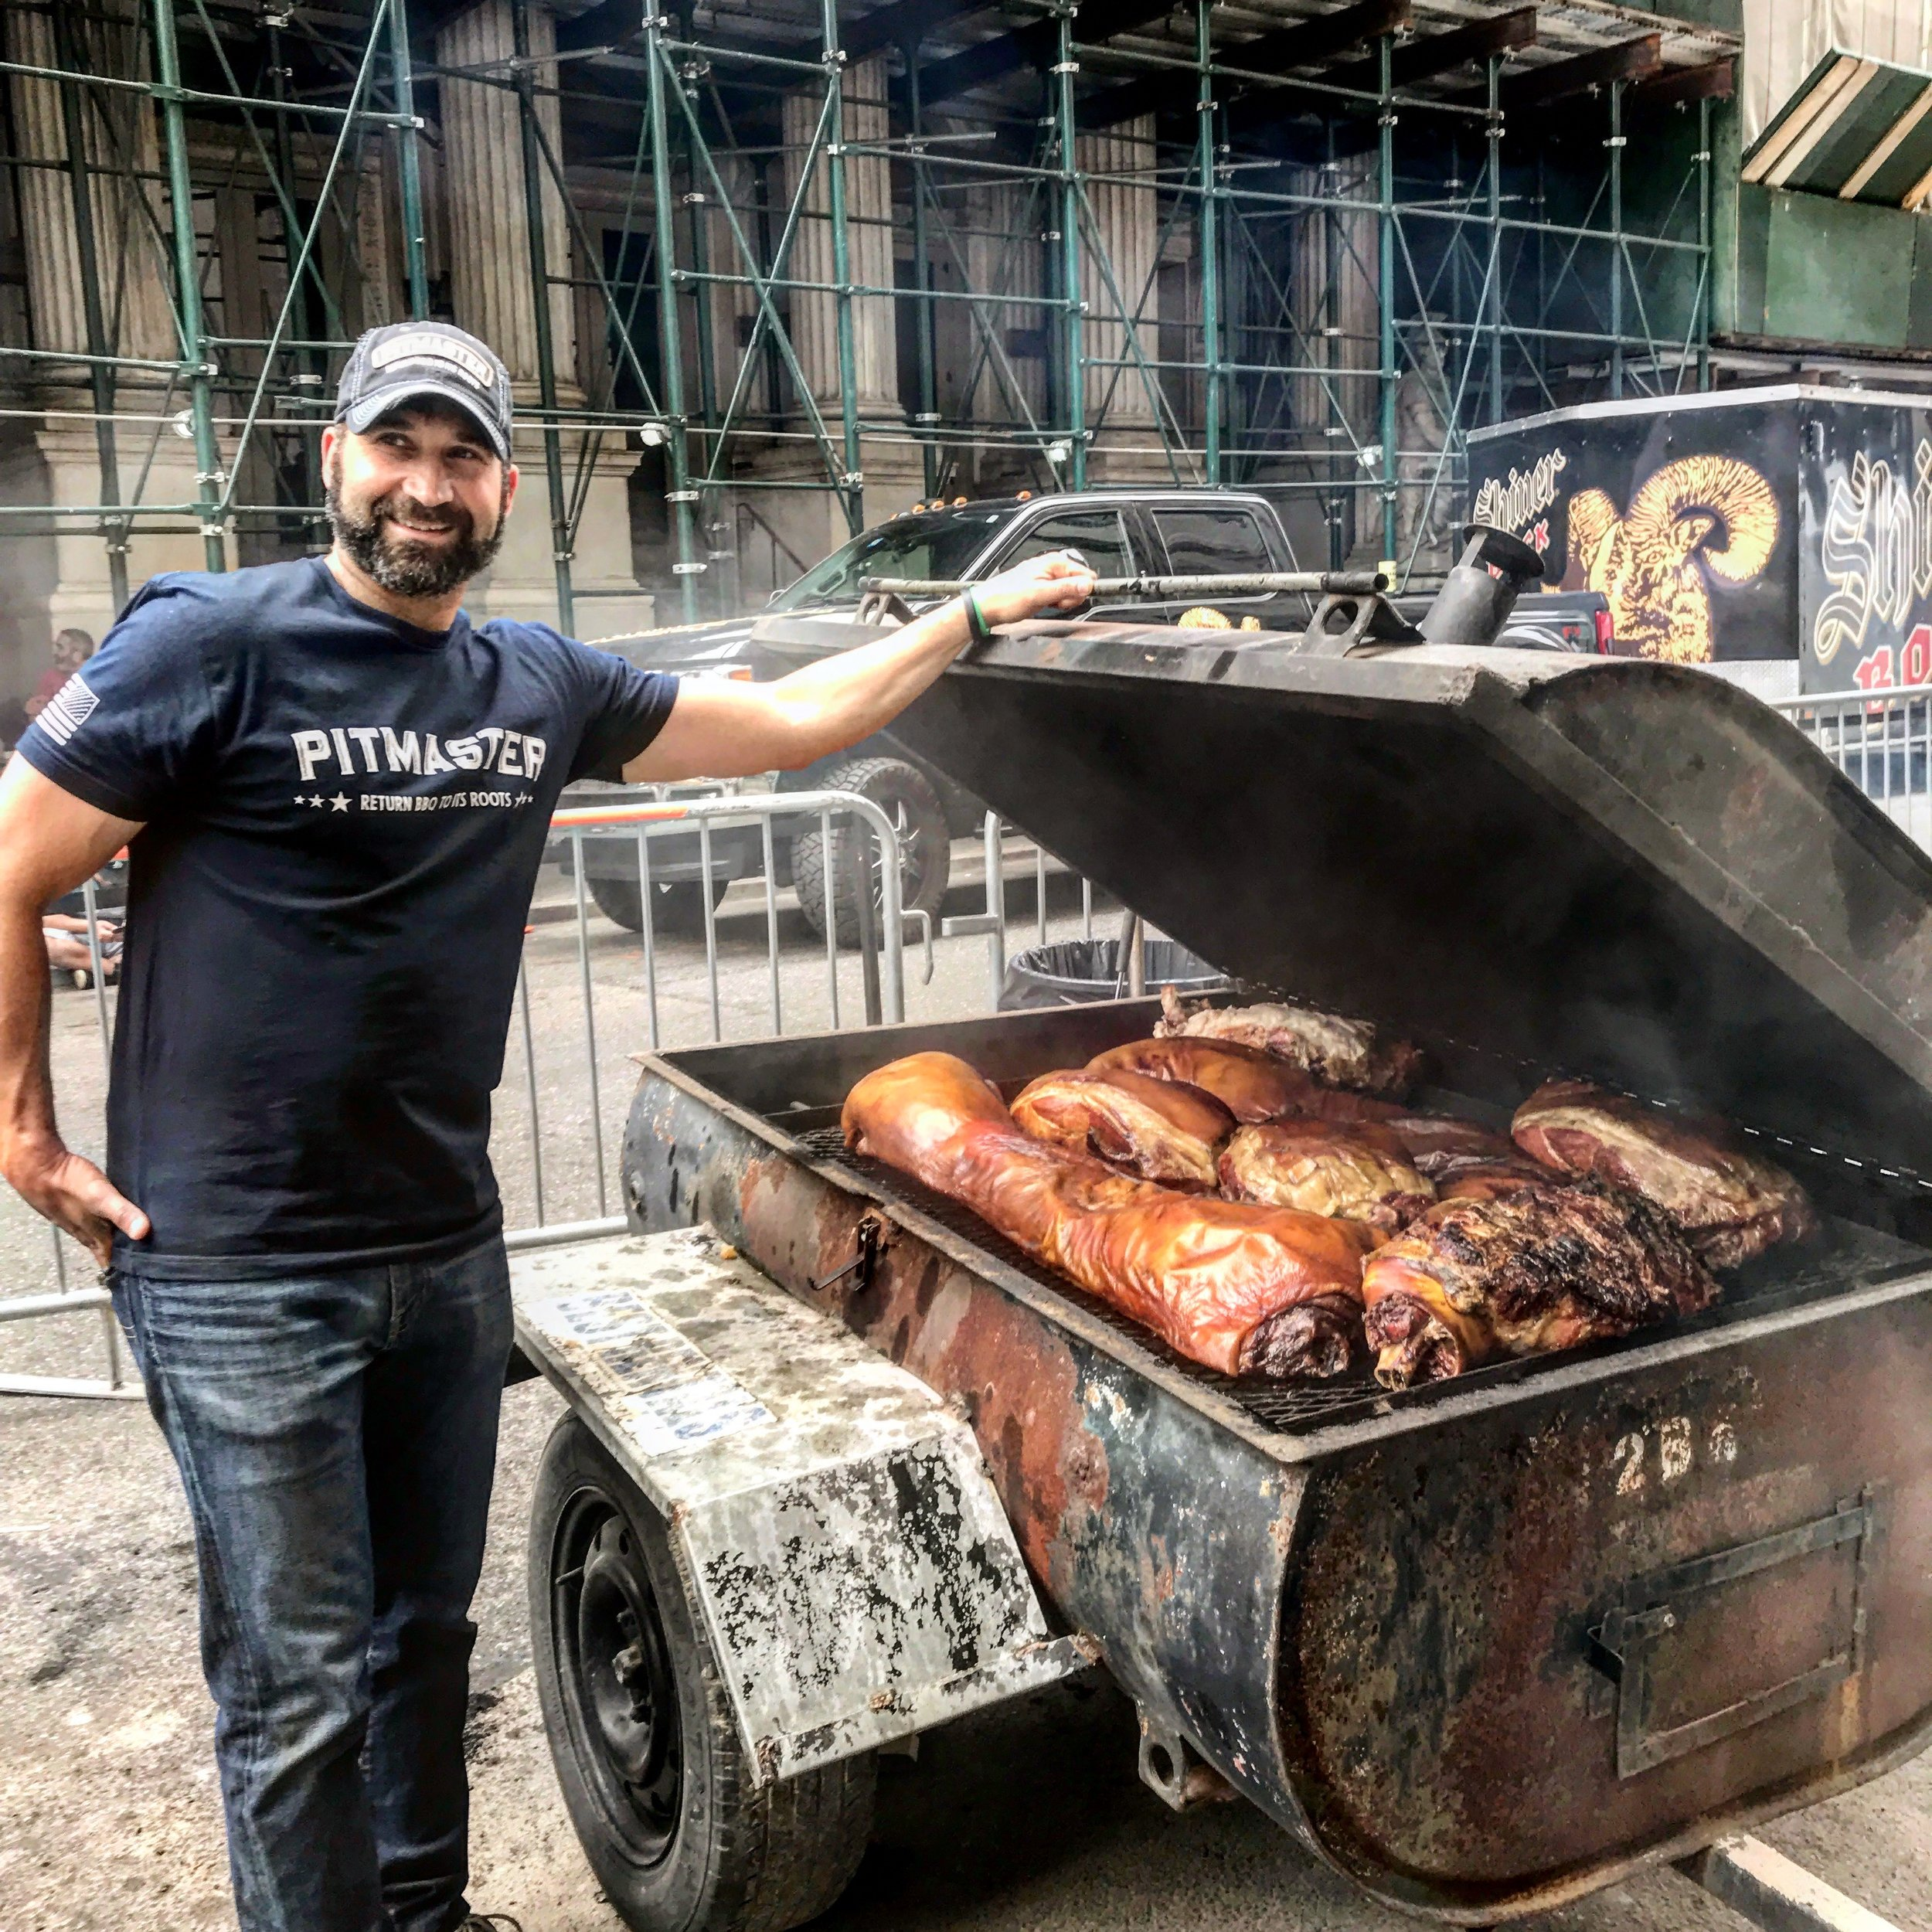 Ed Mitchell's Whole Hog cooking at the Big Apple BBQ